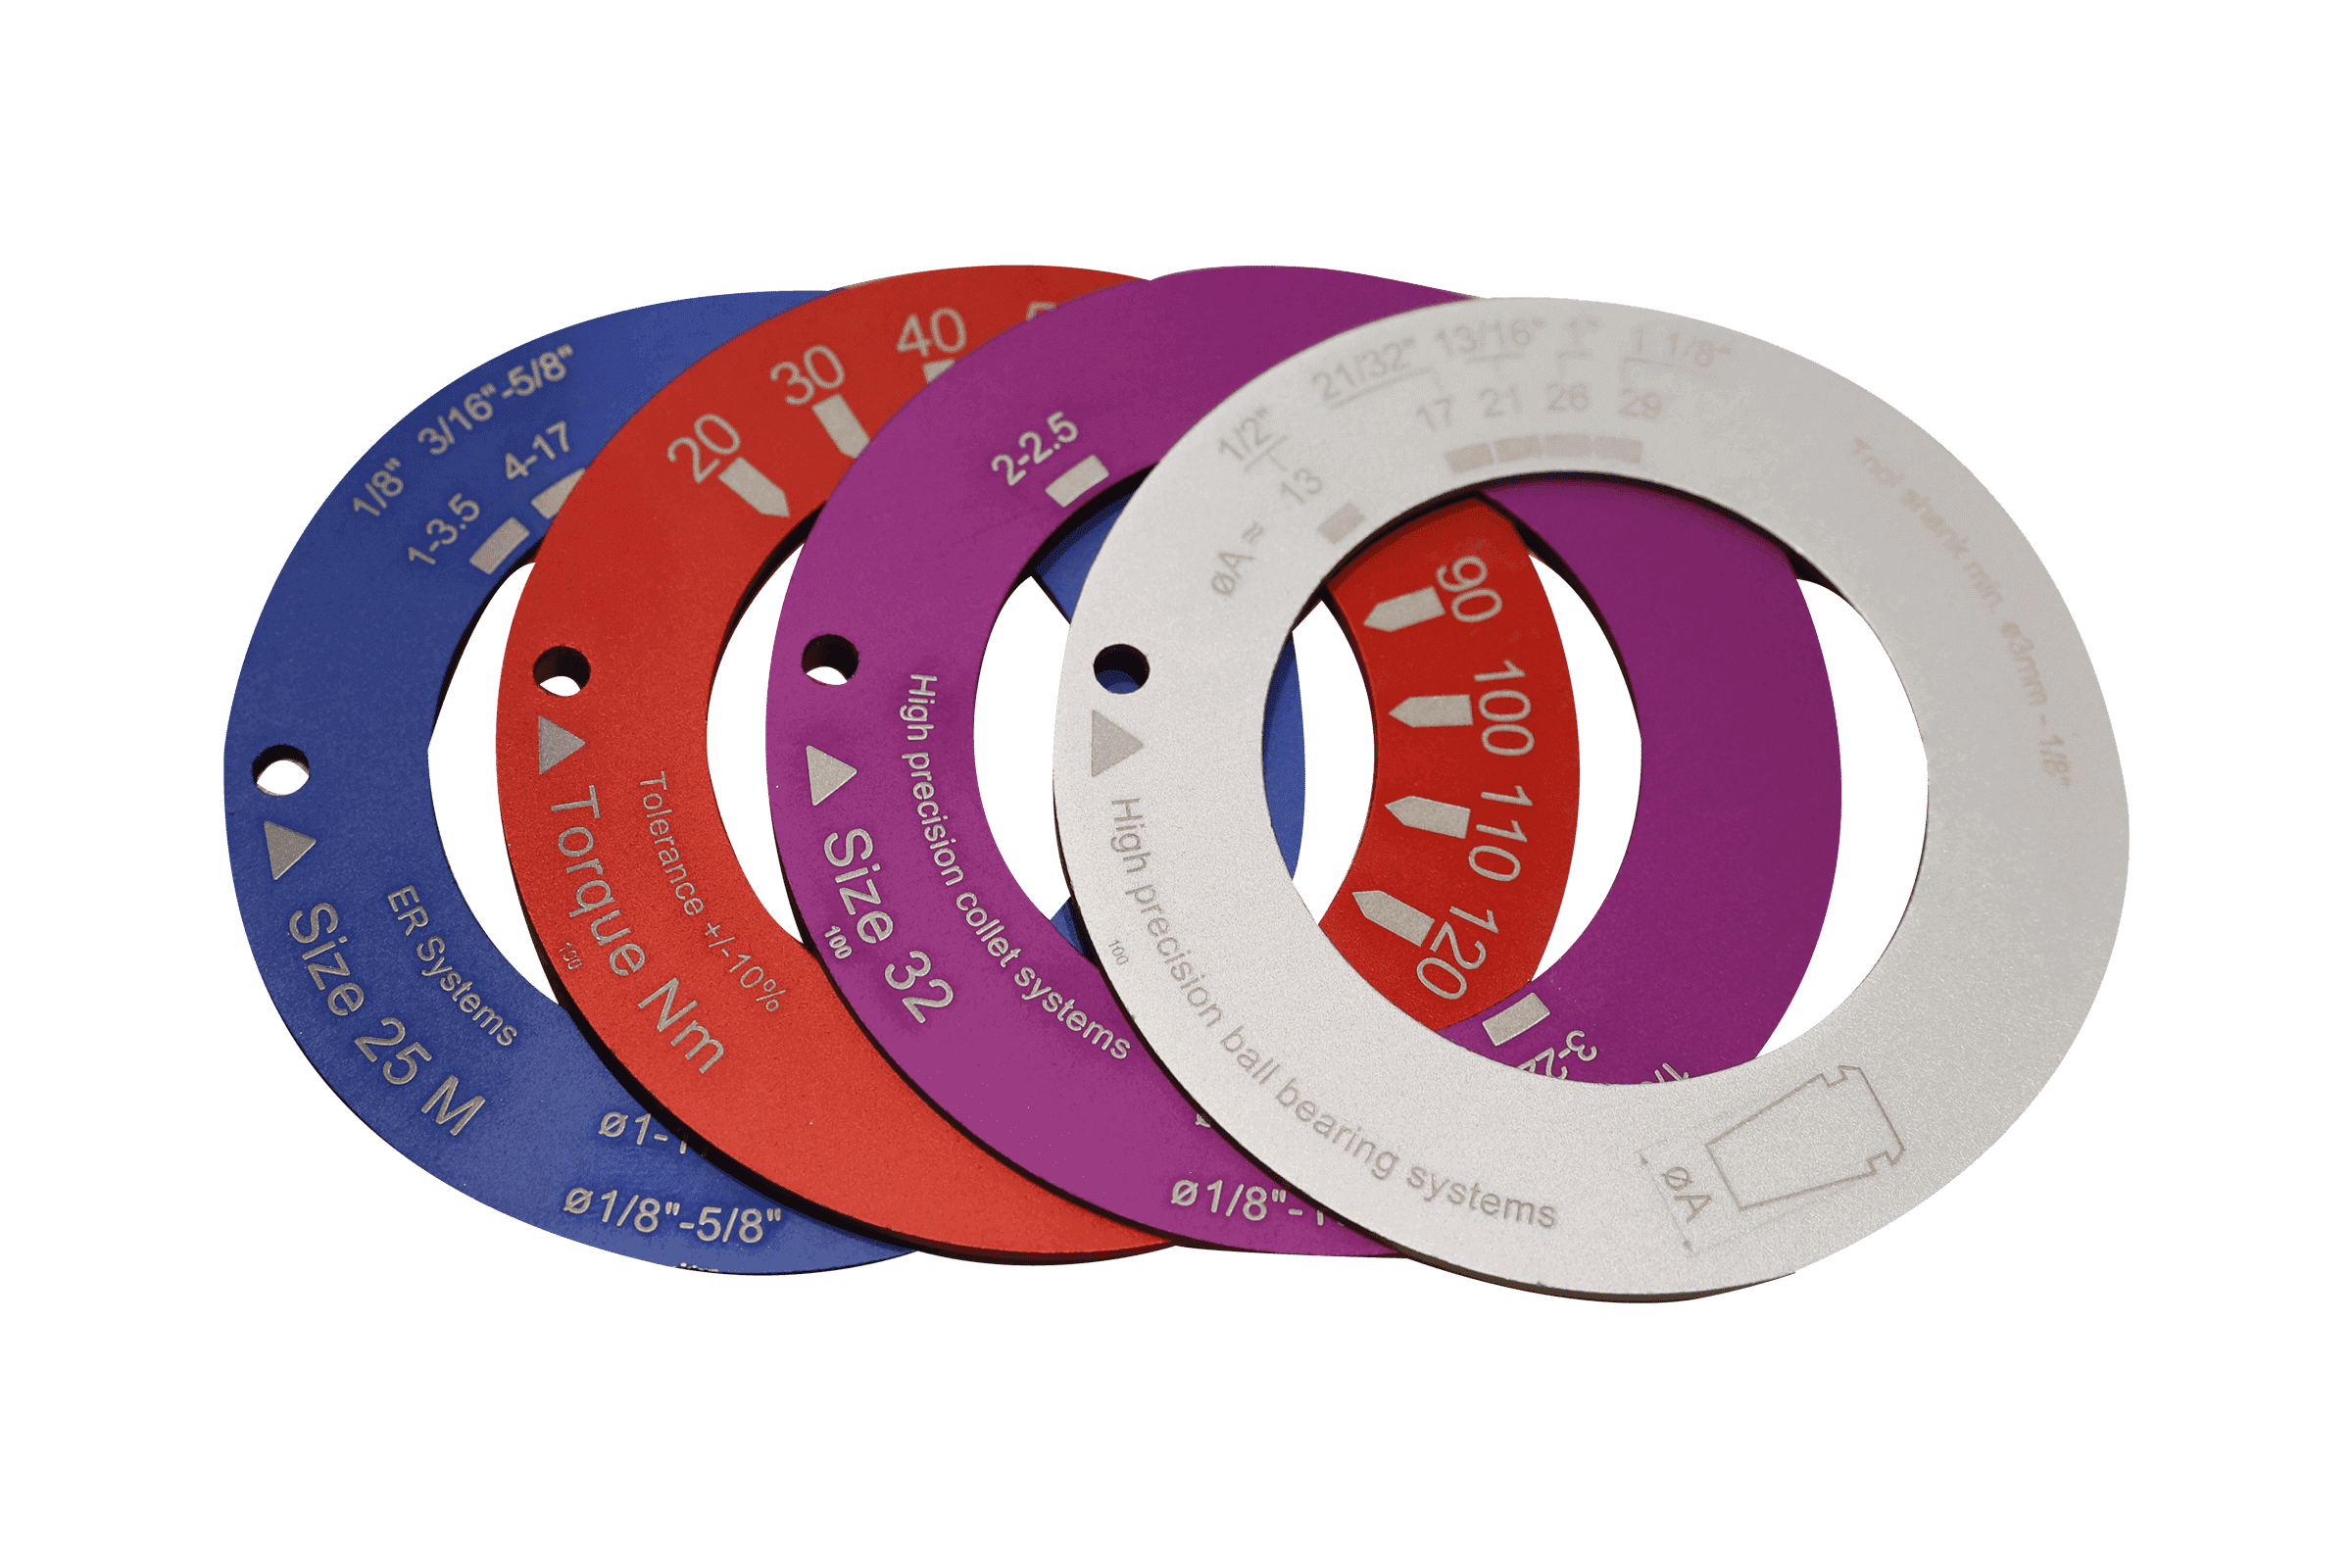 Indicator rings for TORCO-BLOCK tool assembly by REGO-FIX